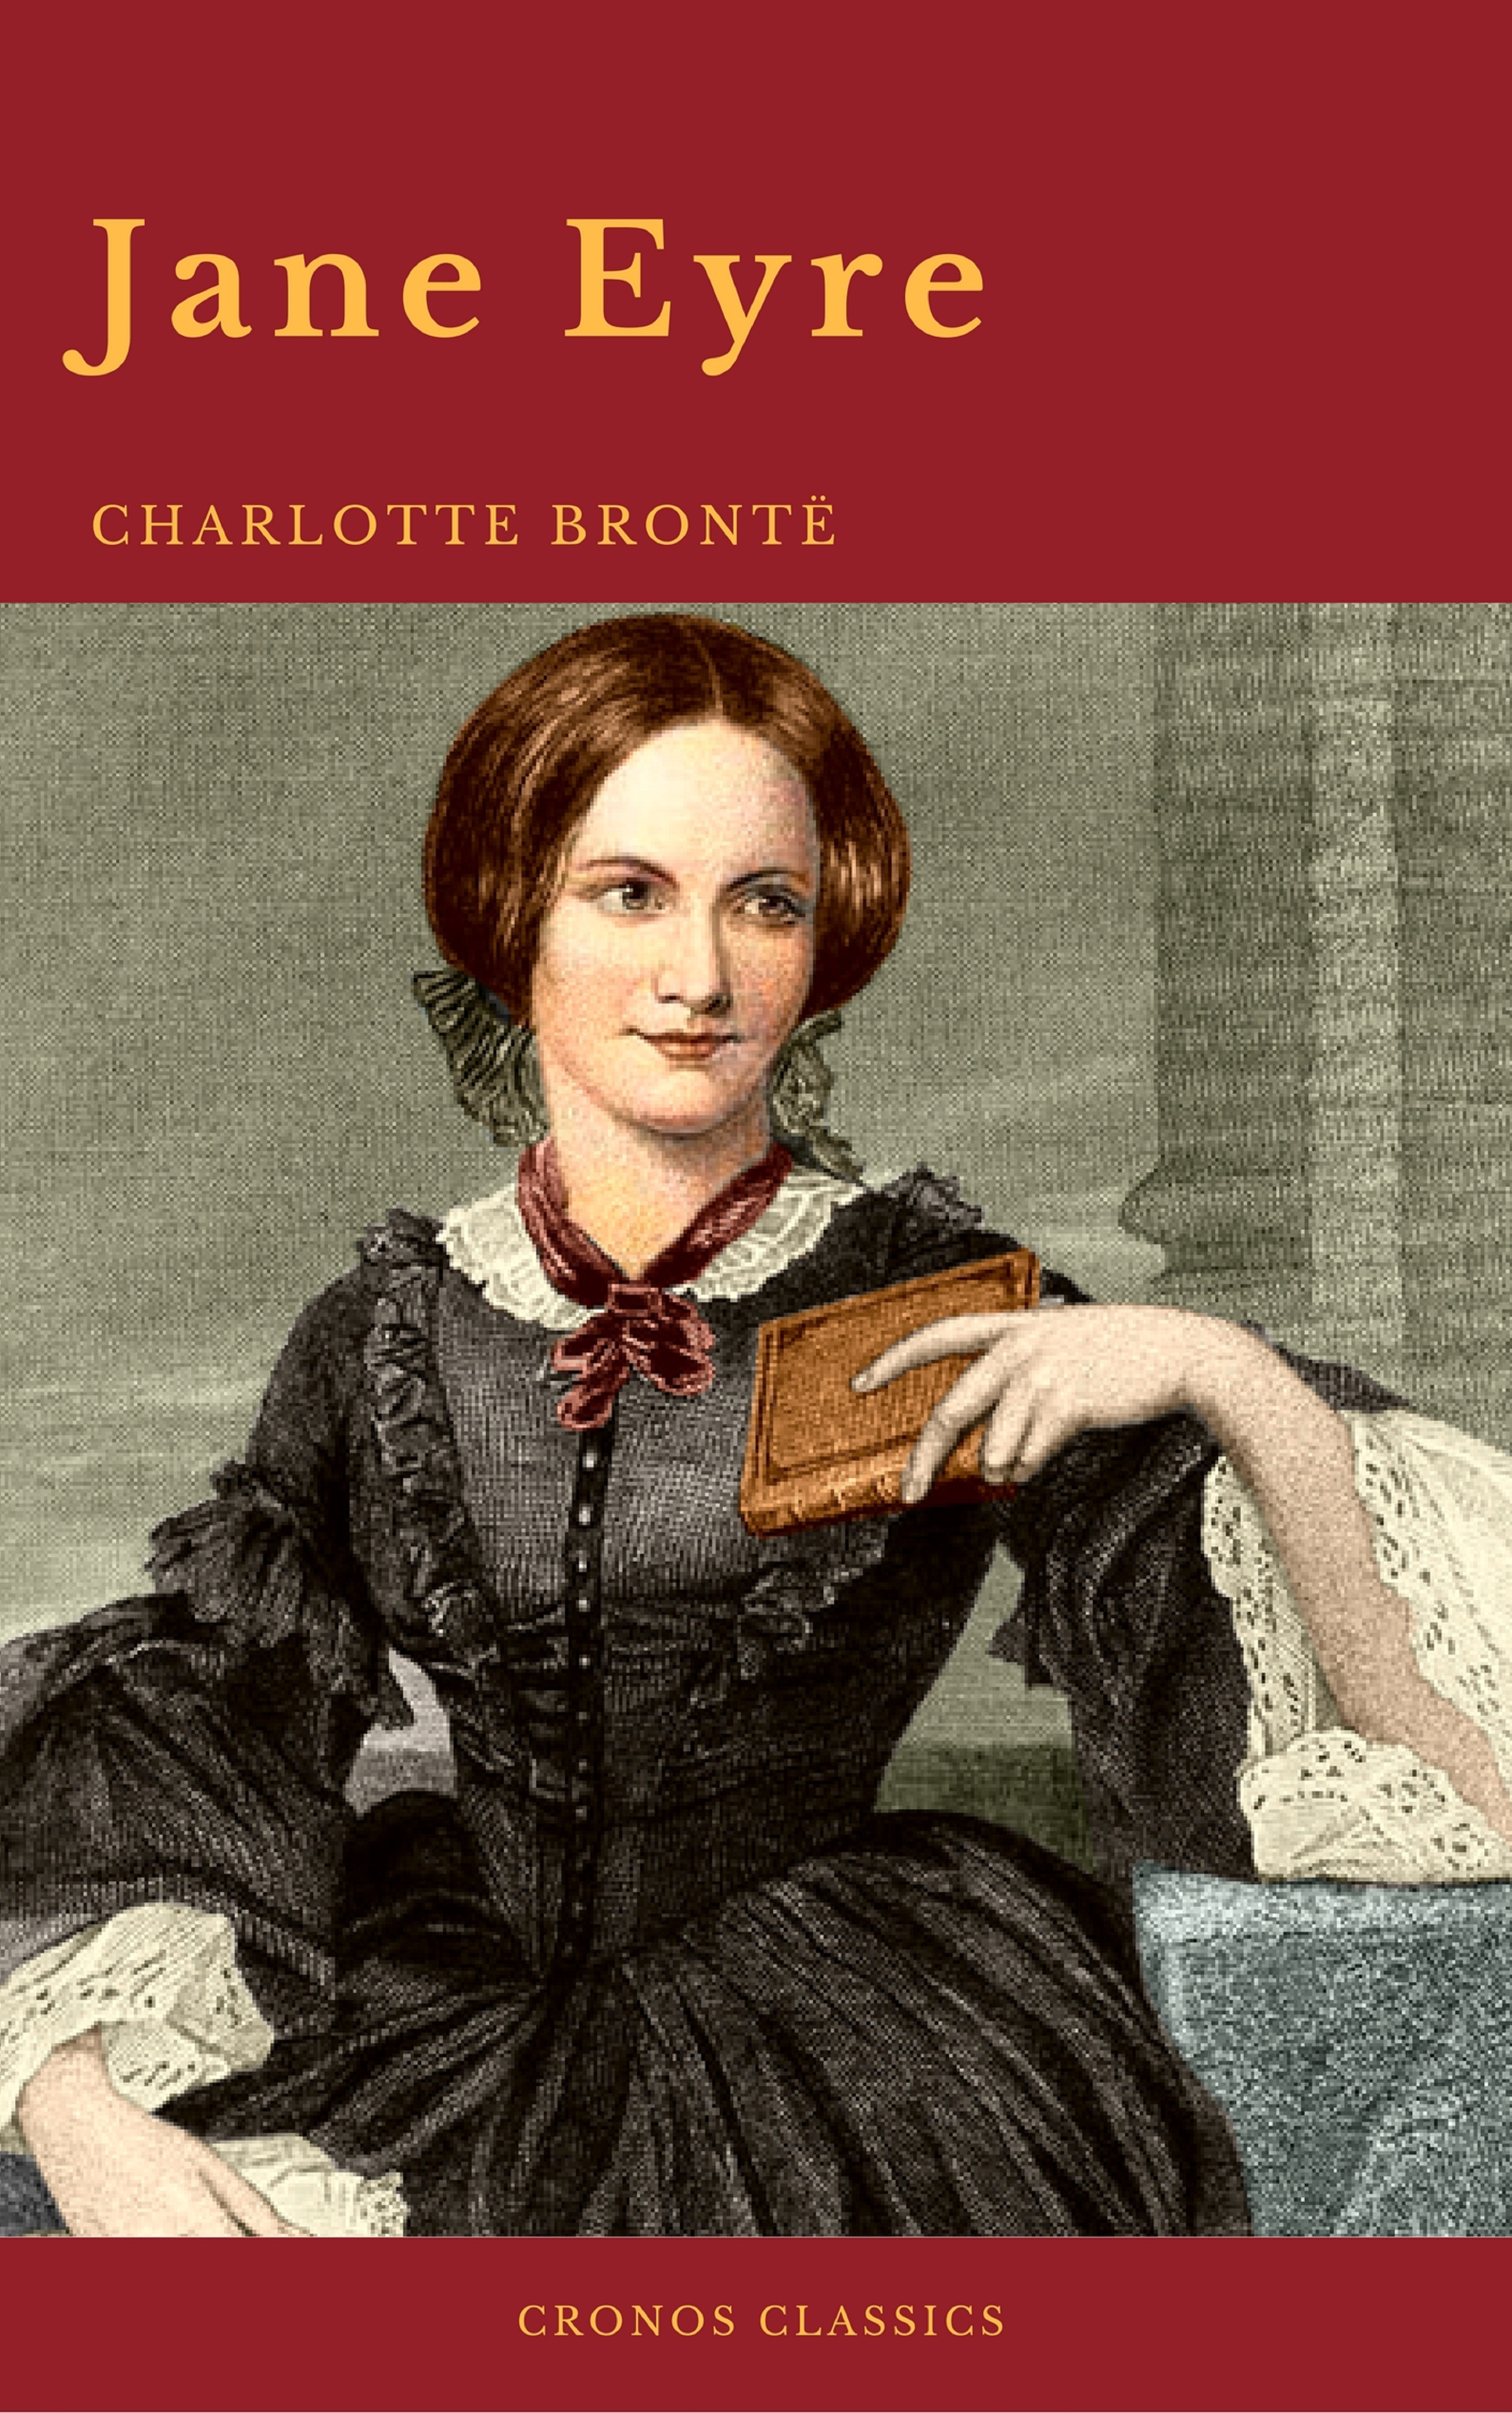 jane eyre by charlotte bronte with preface cronos classics